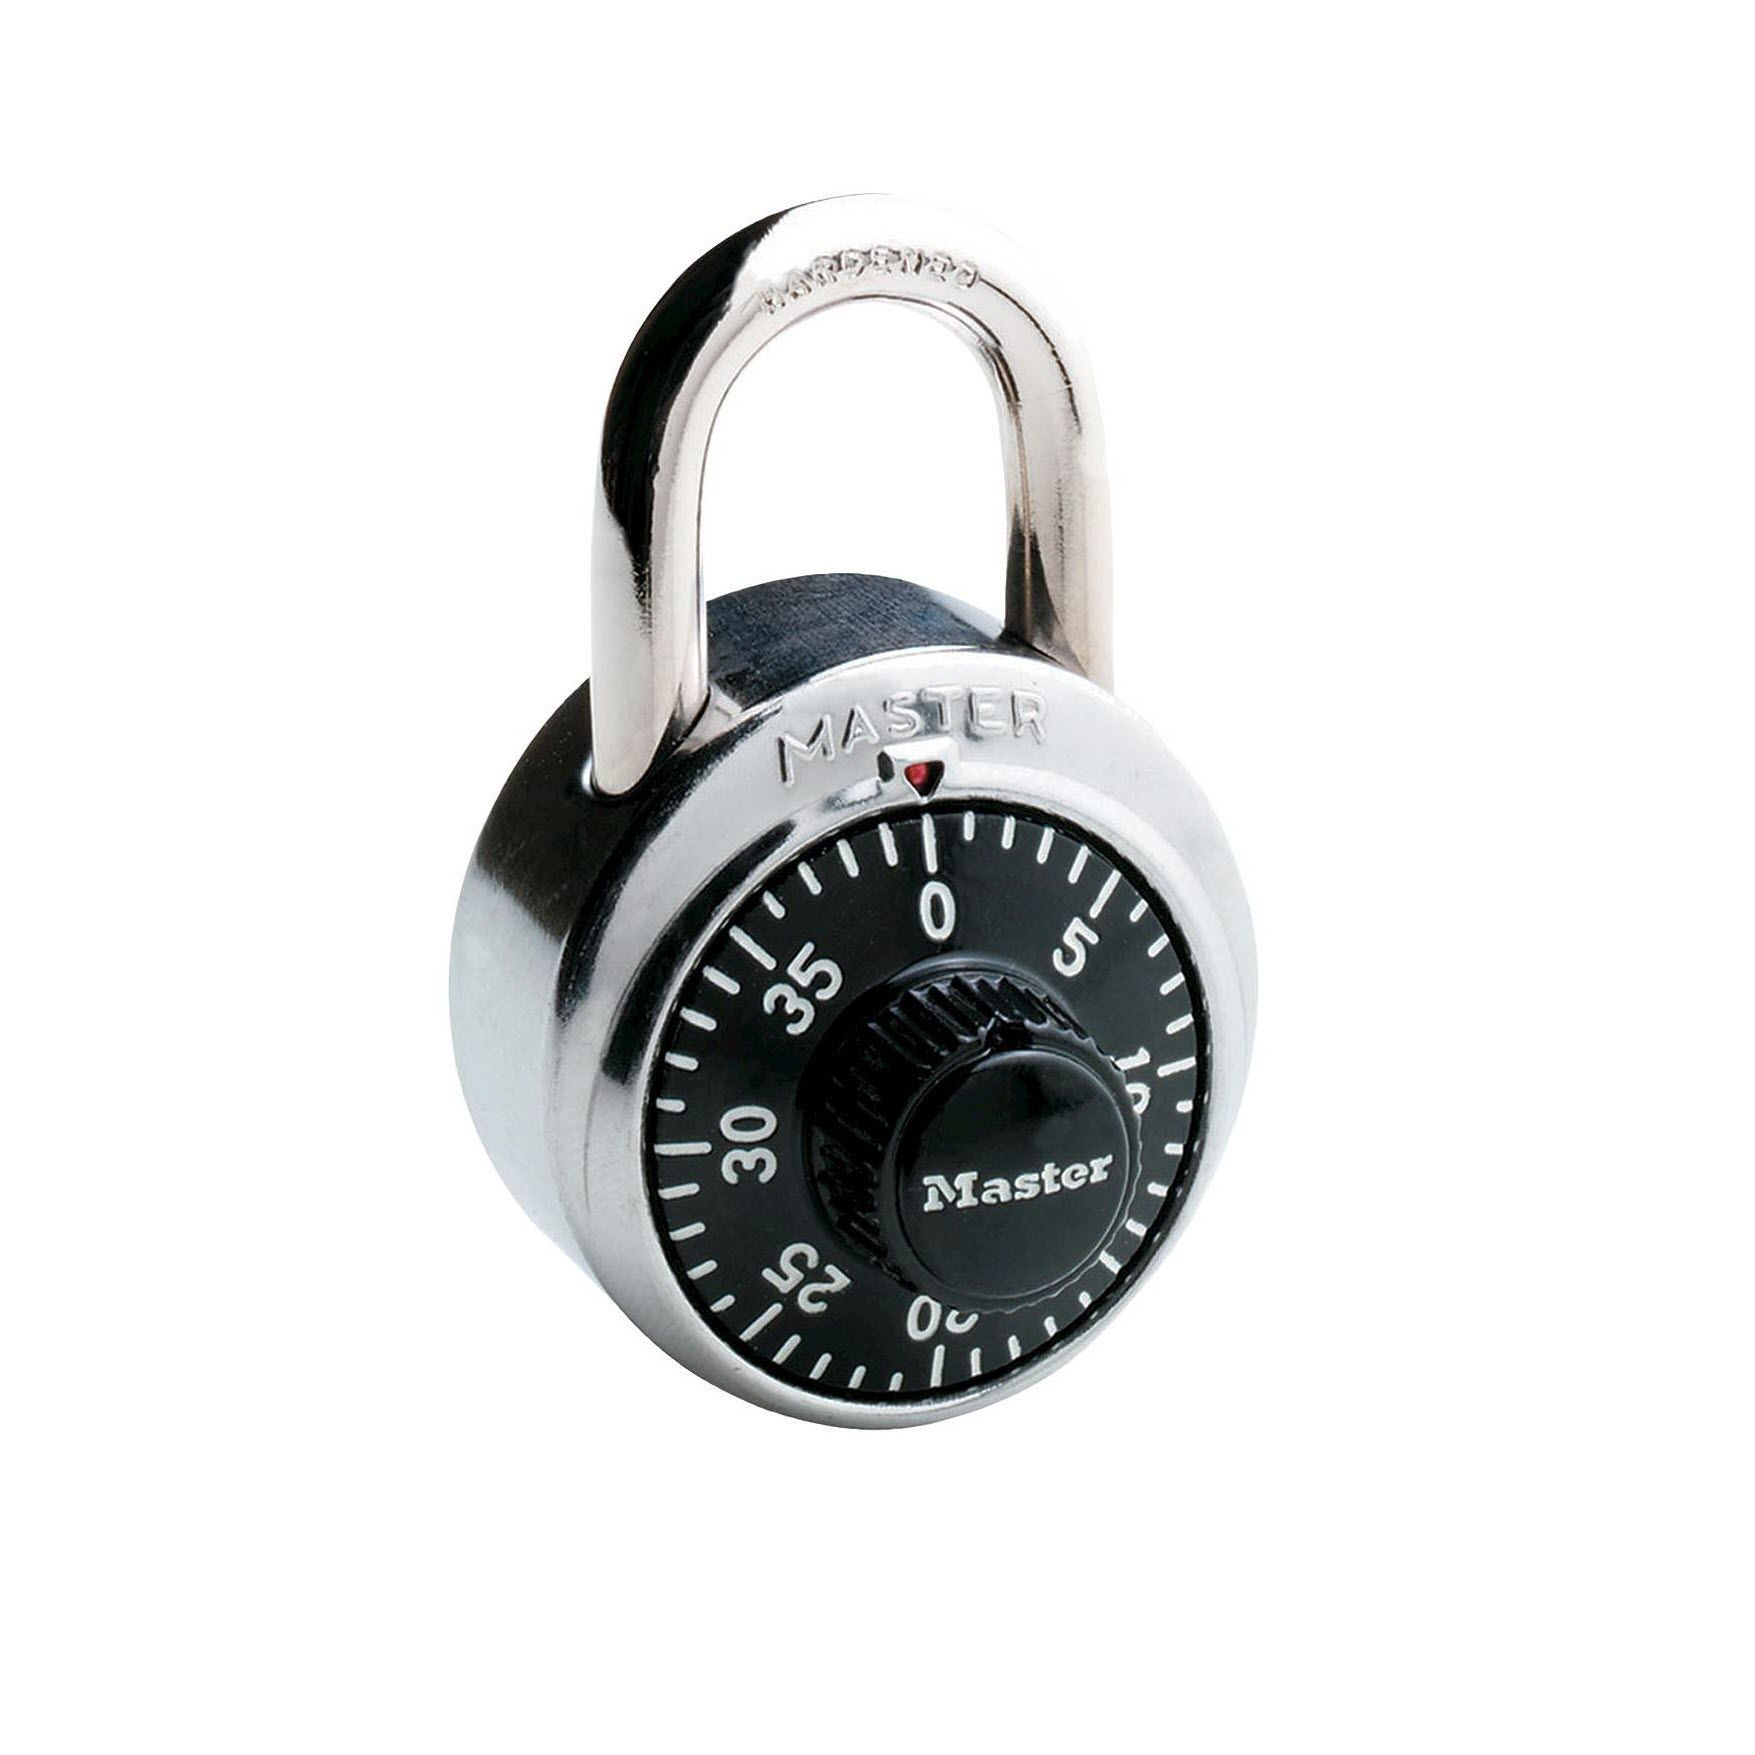 how to break combination ode for a lock